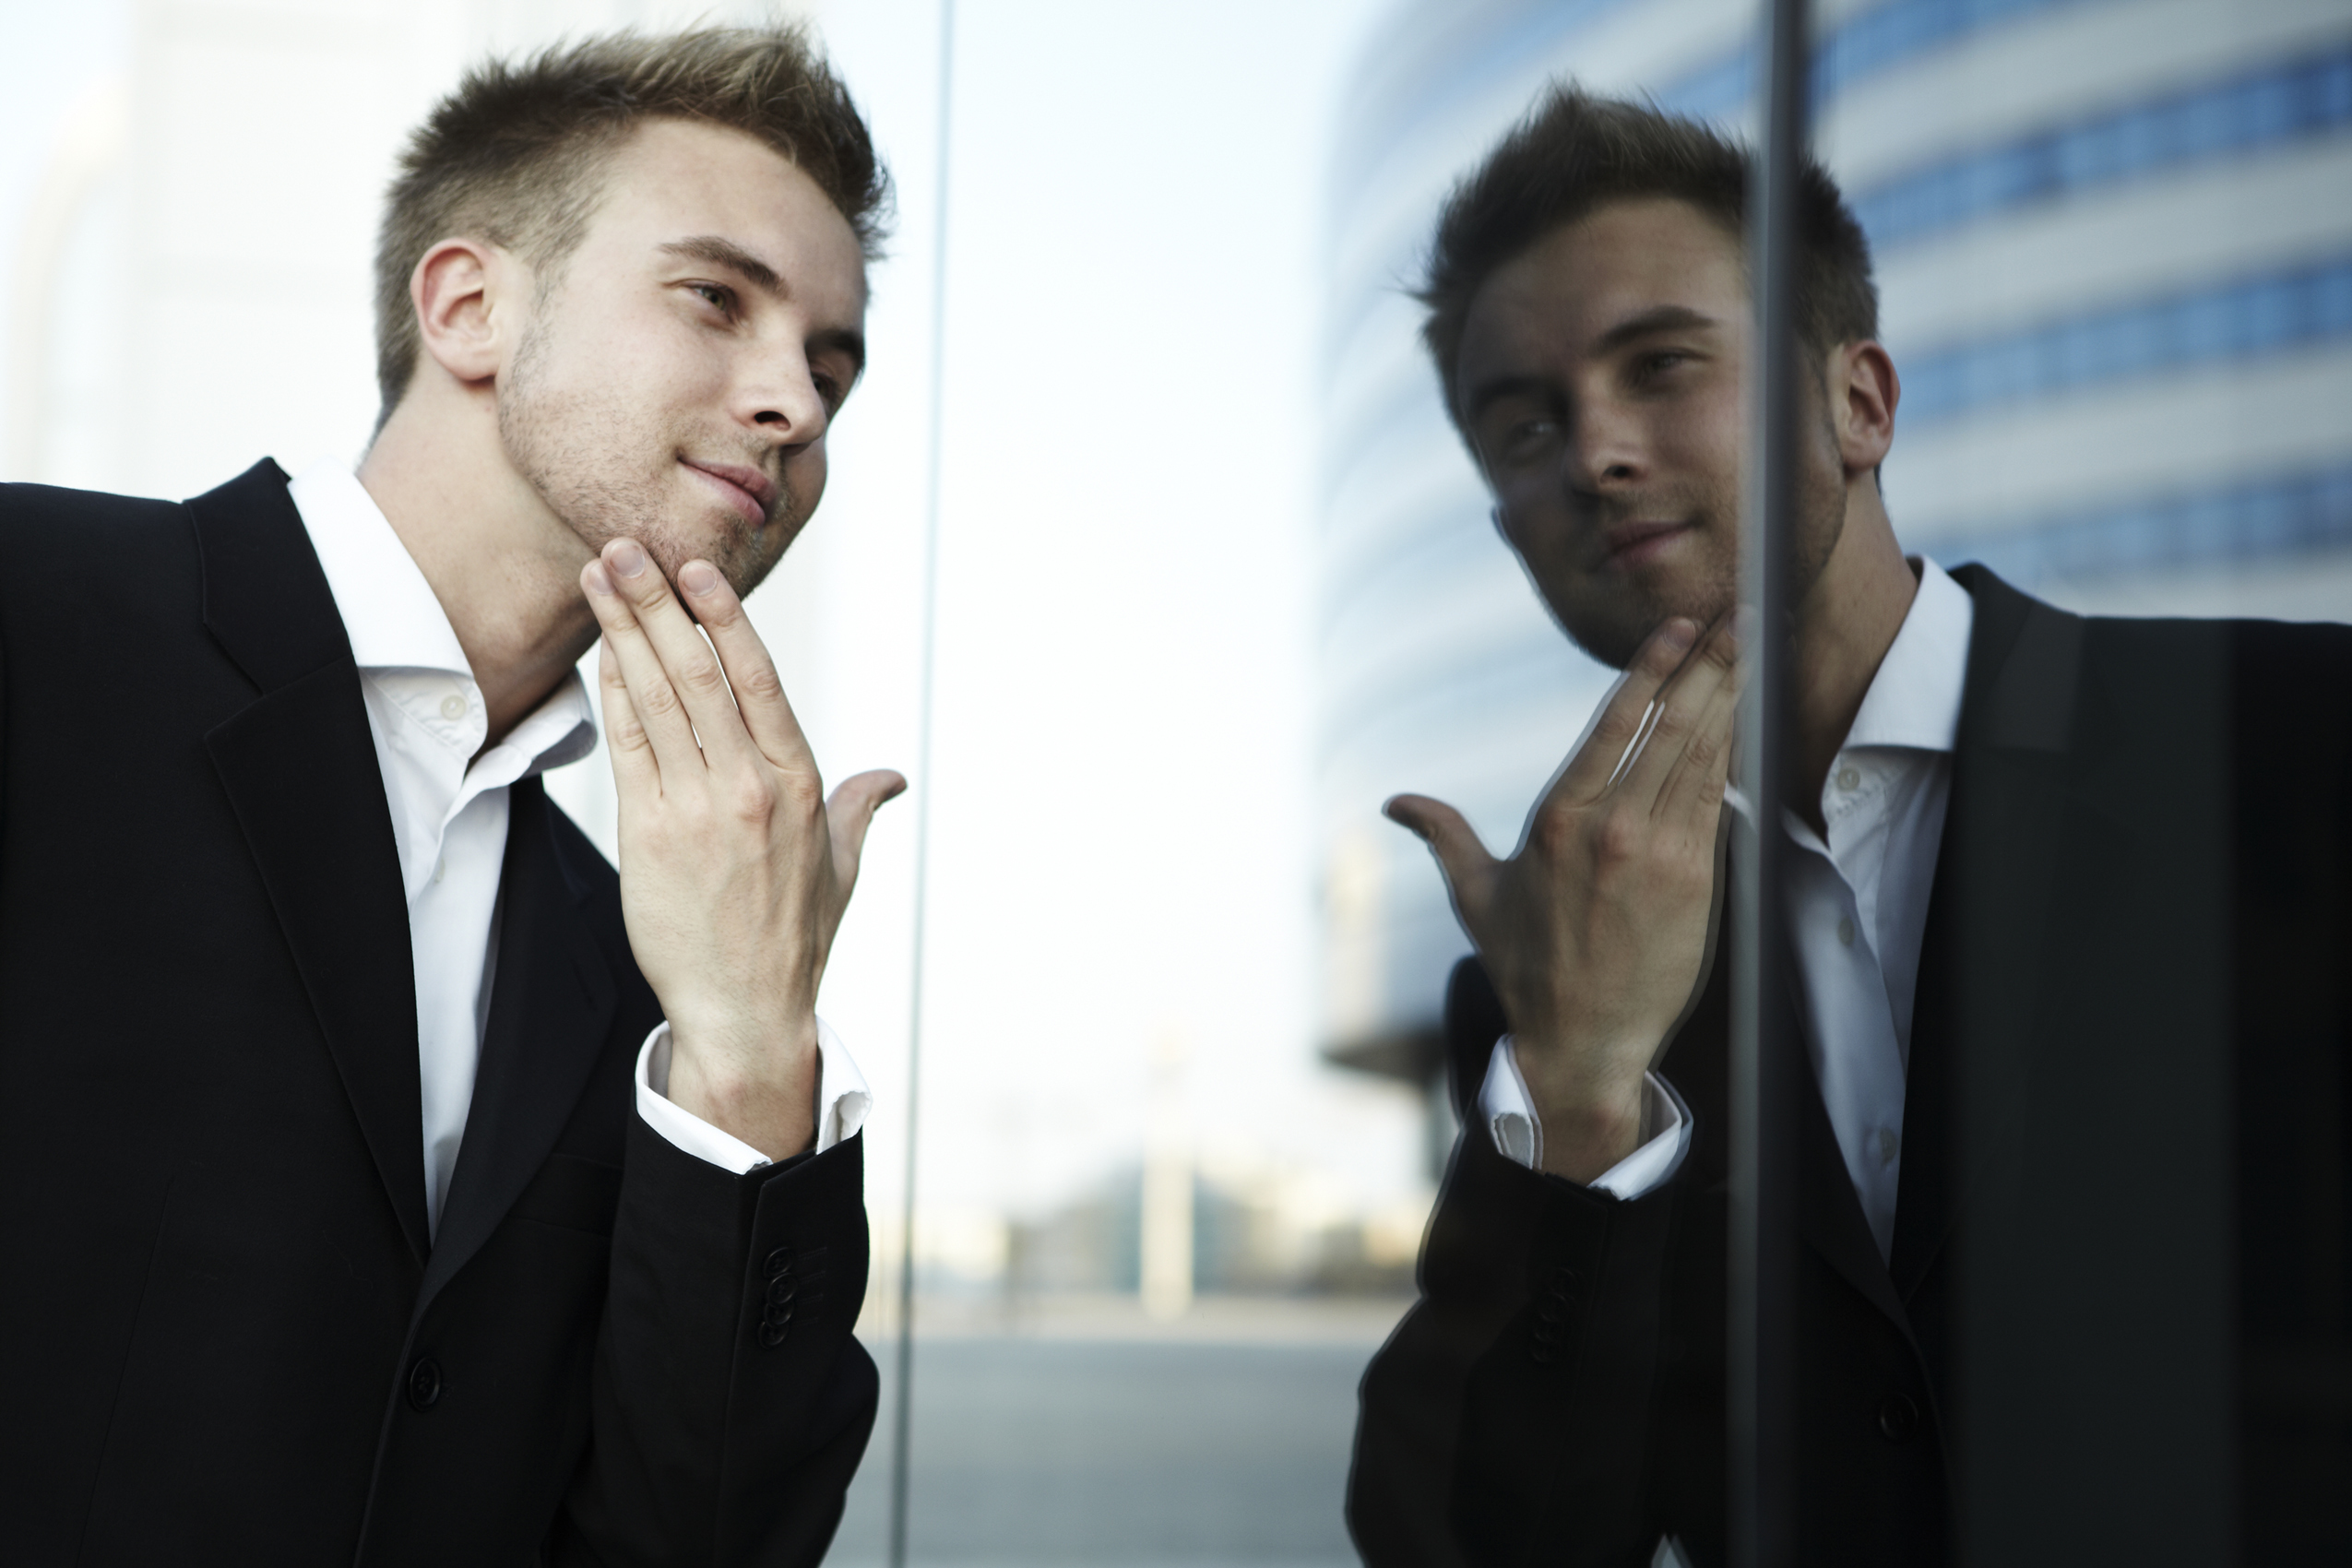 Do Narcissists Really Love Themselves Too Much